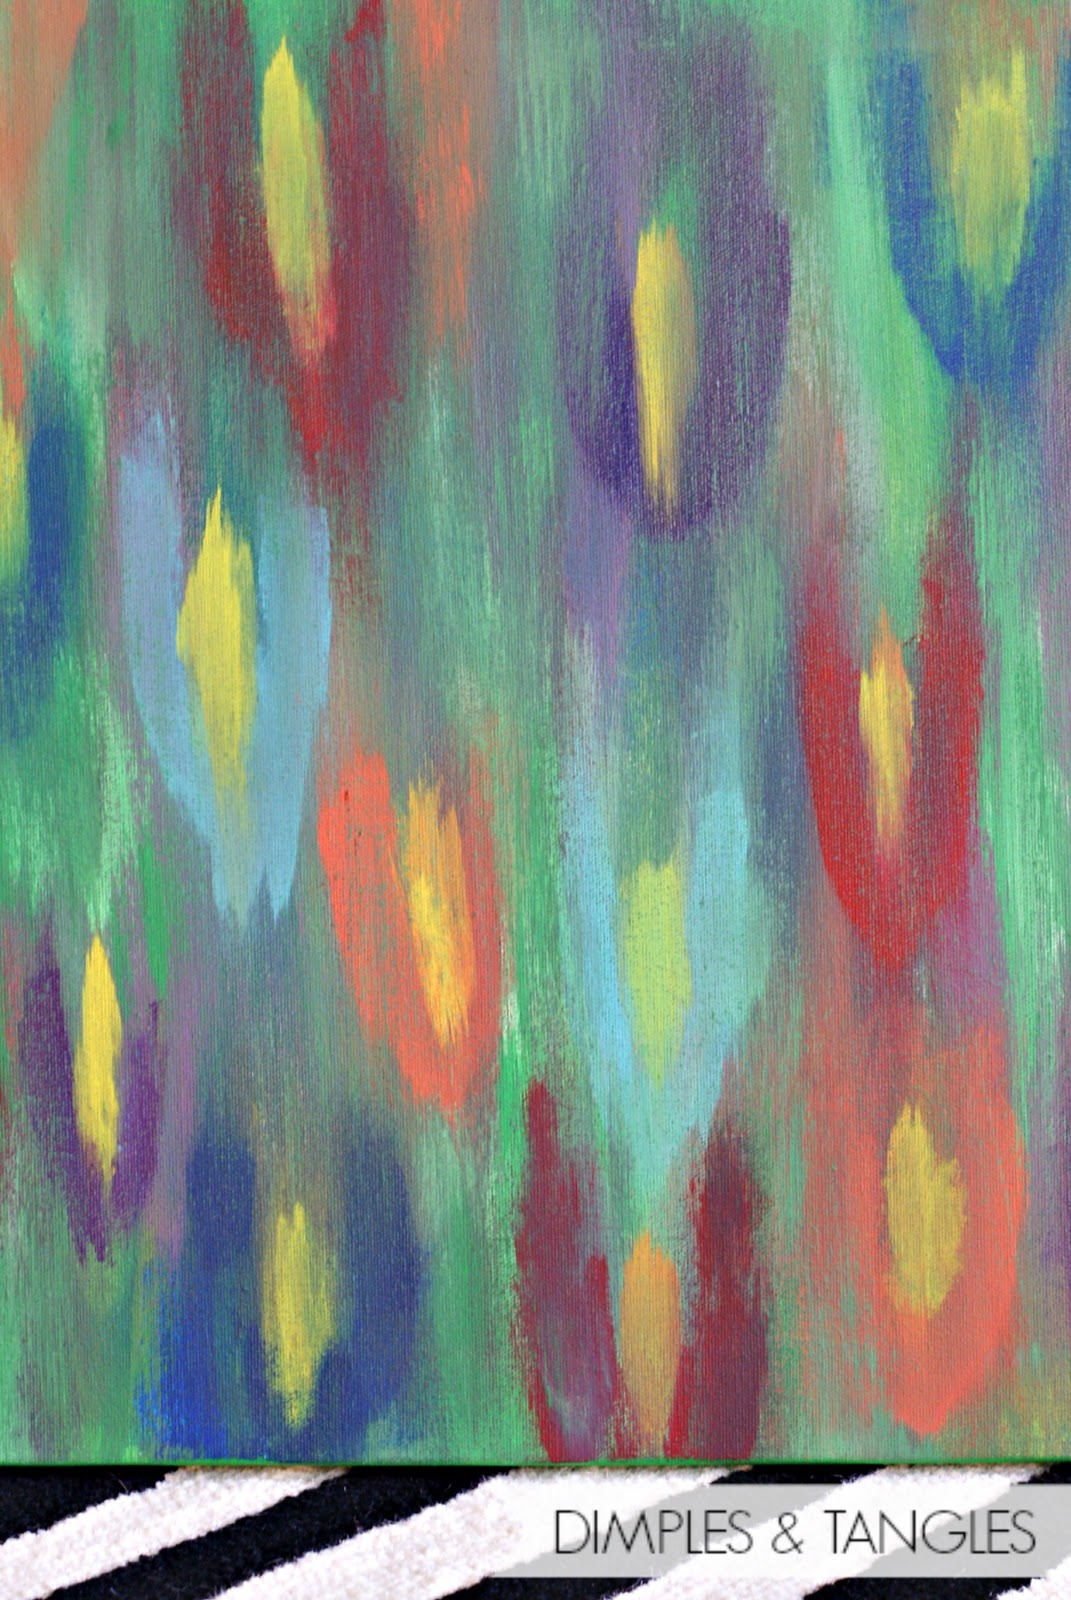 Dimples and Tangles: DIY ABSTRACT ART